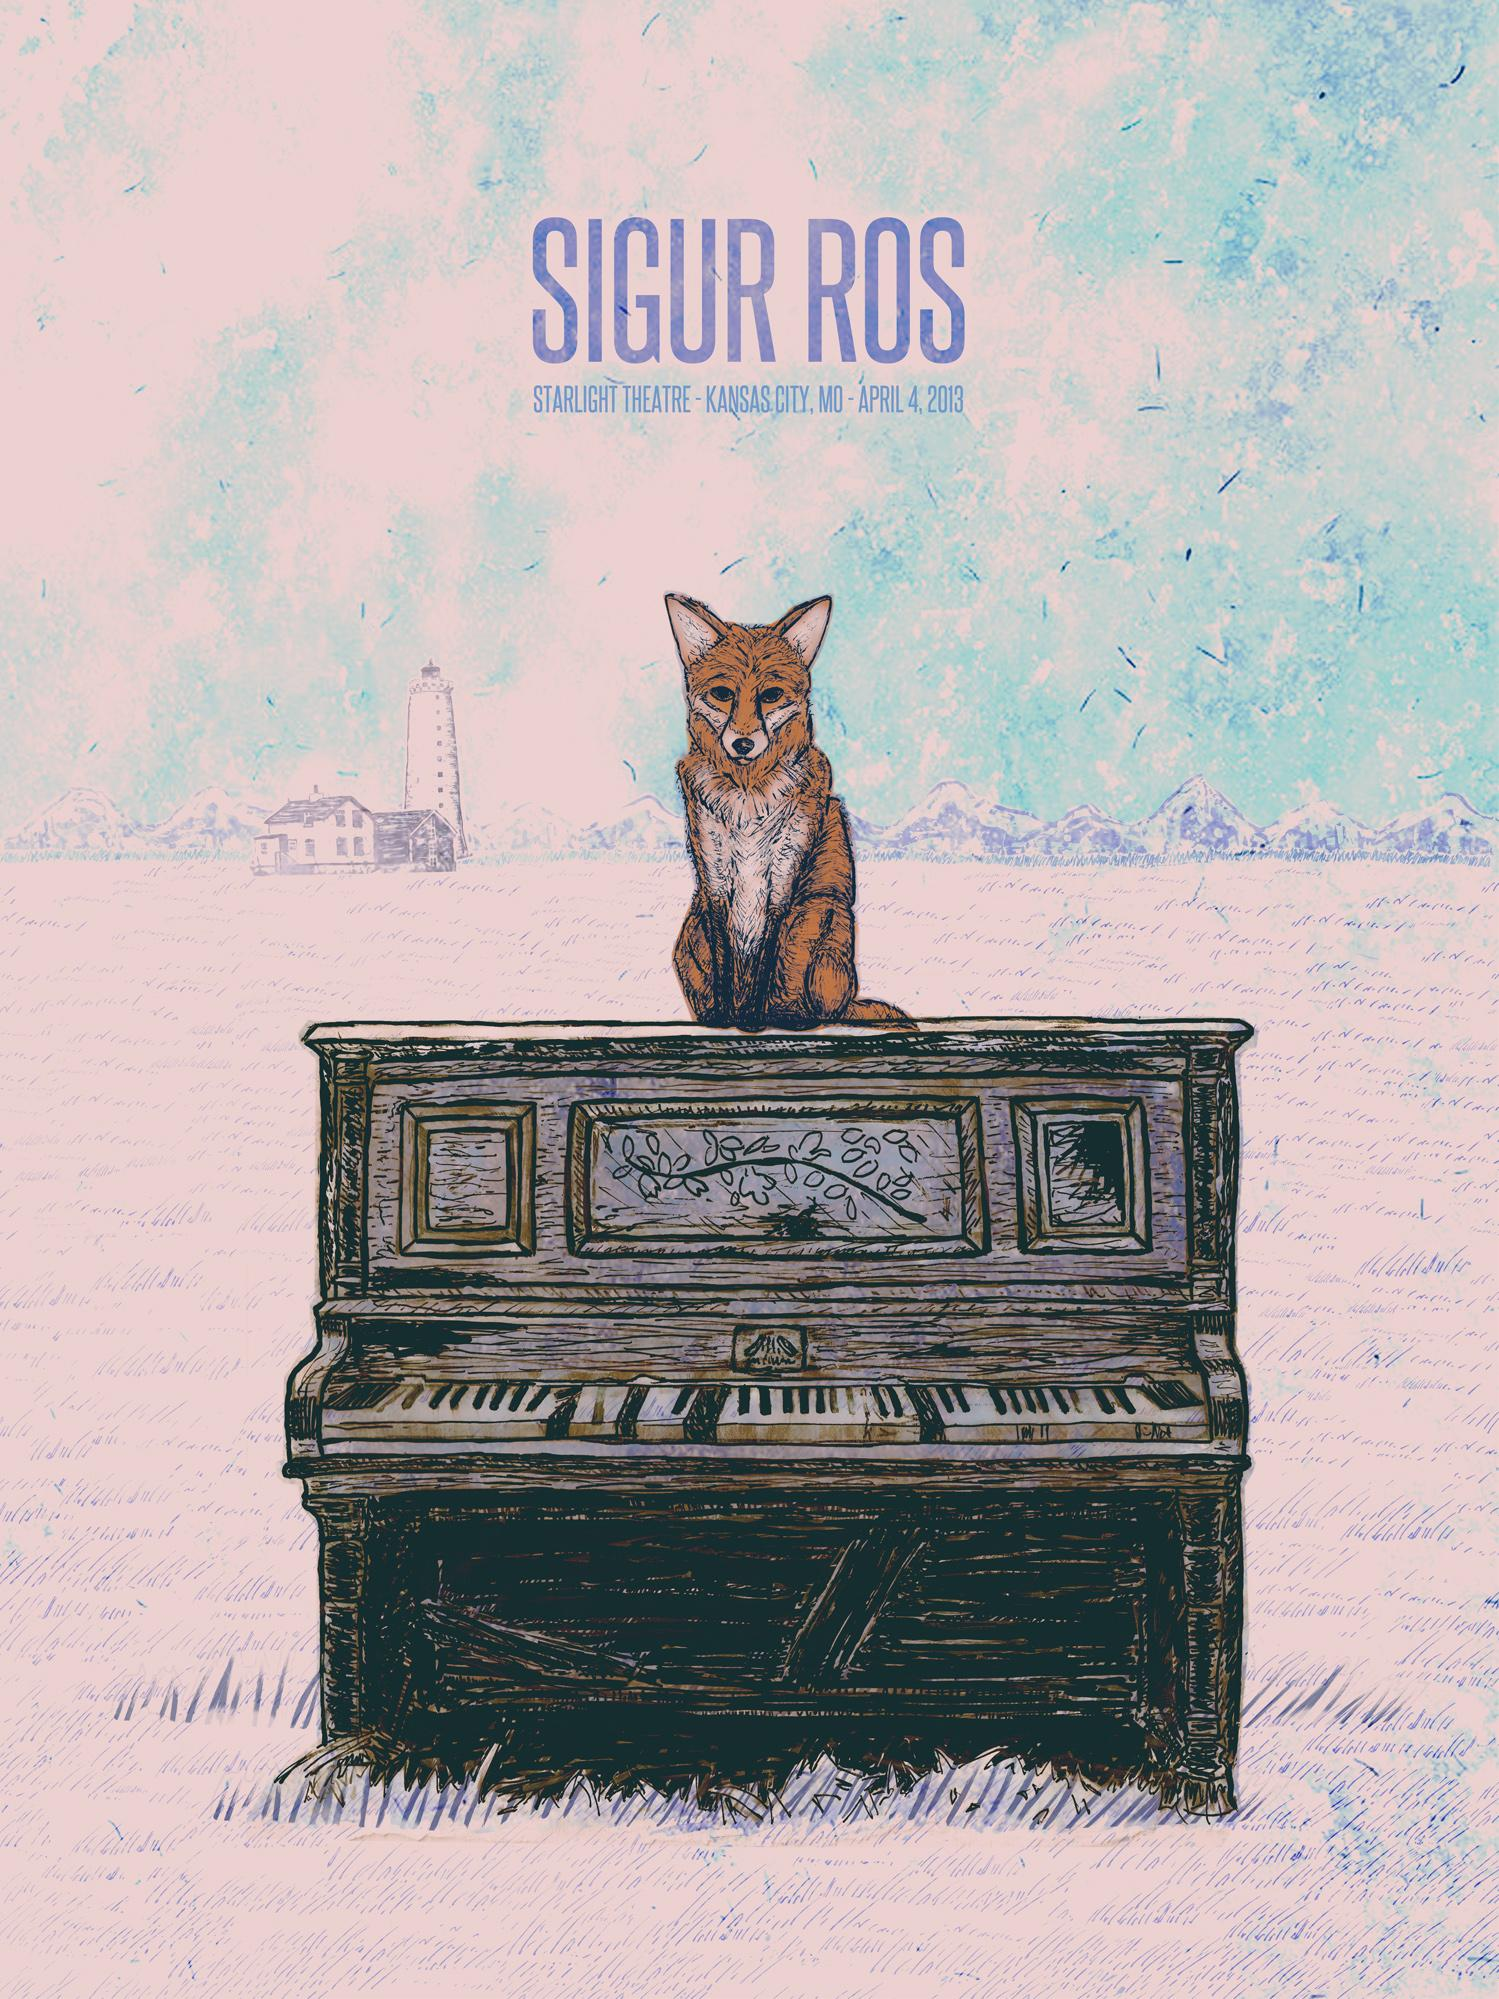 Sigur Ros Gig Poster  - image 15 - student project